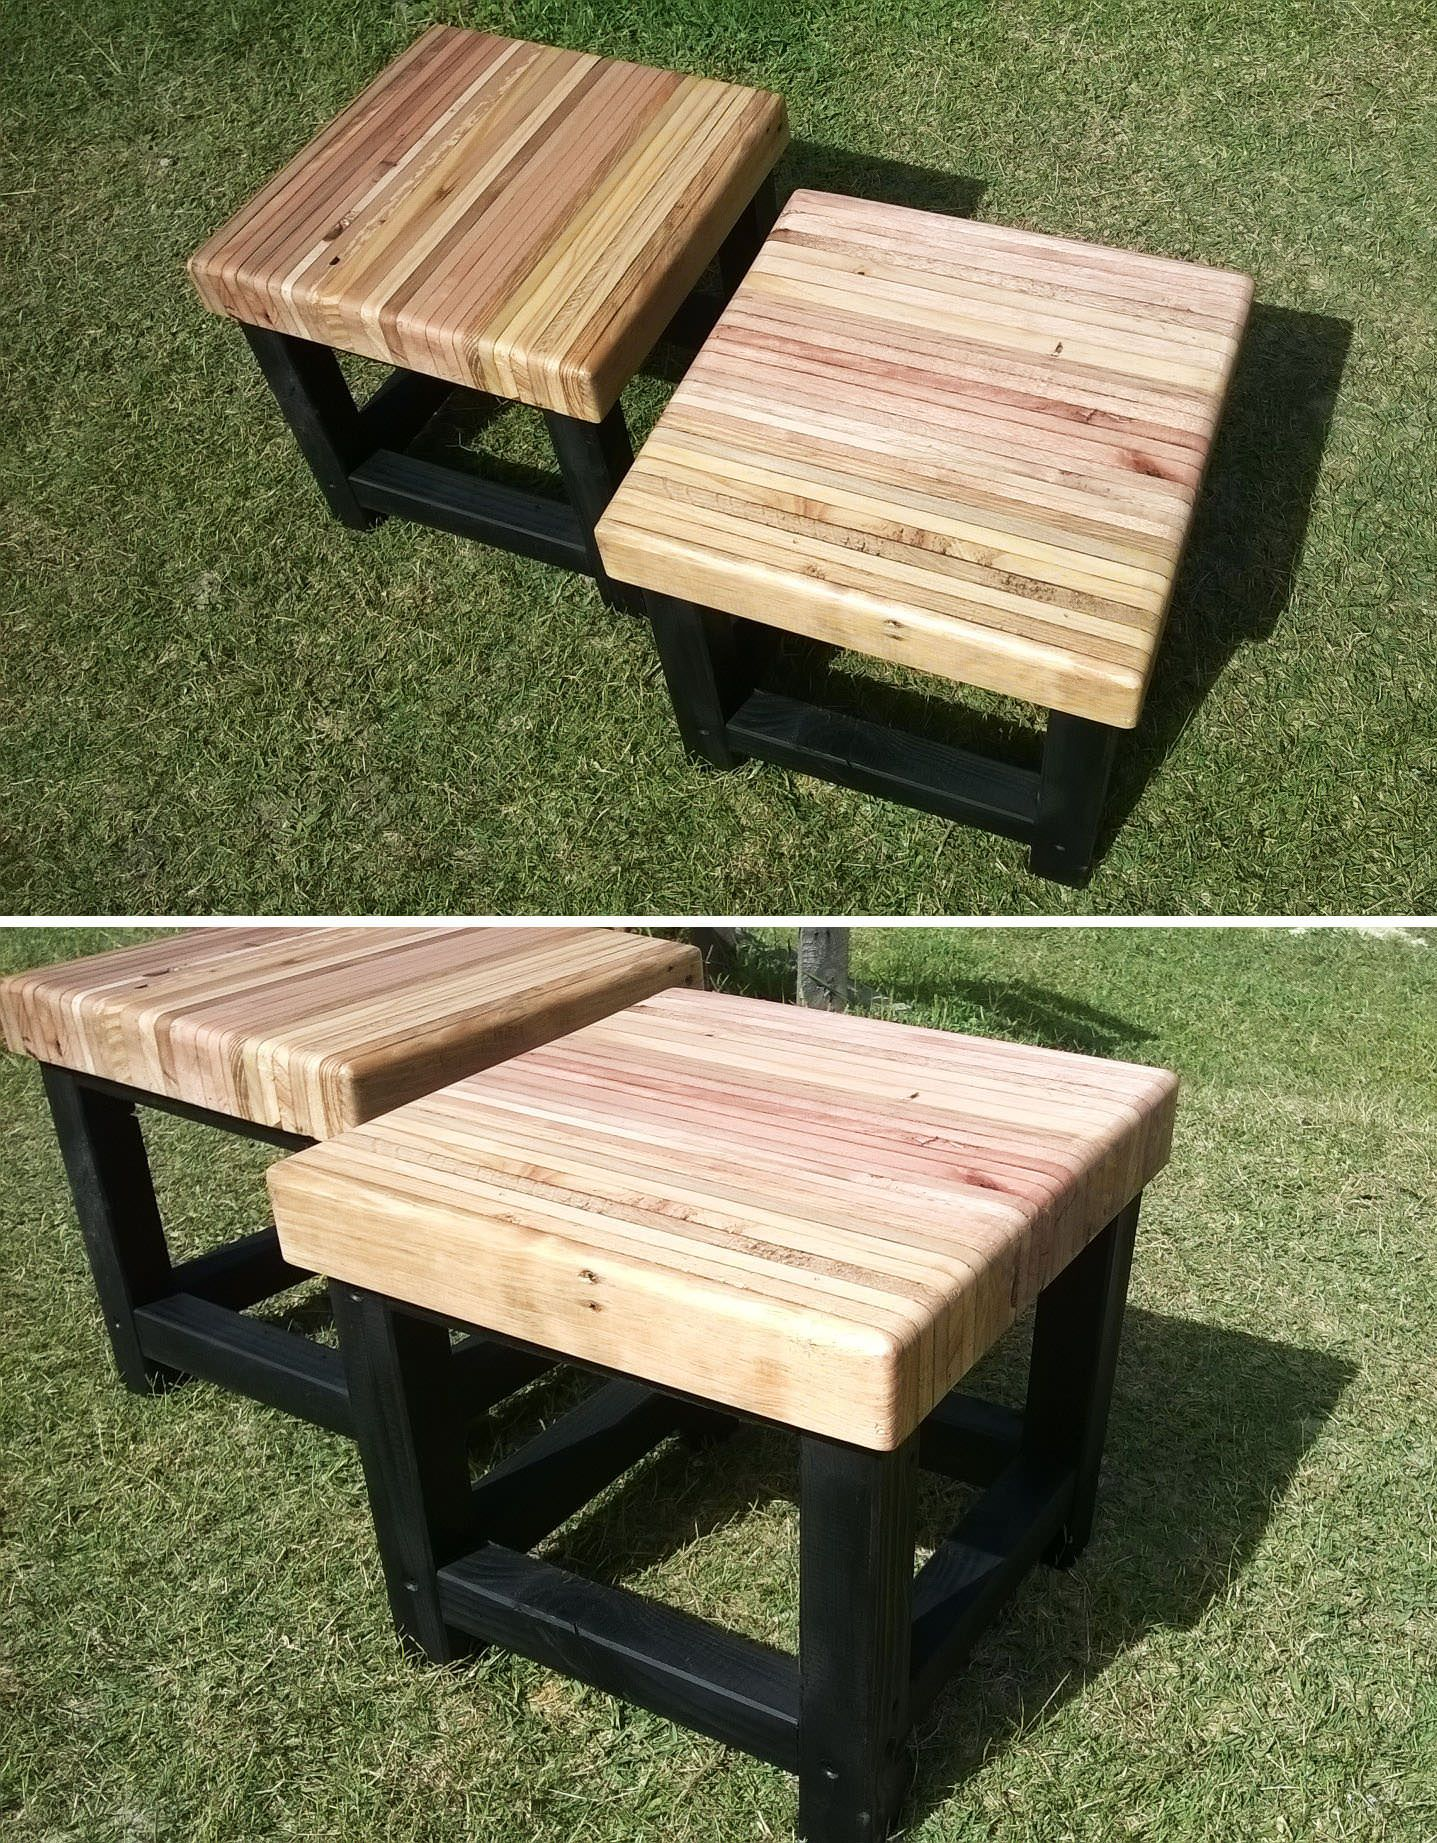 Bench Made From Laminated And Recycled Wooden Pallet Planks